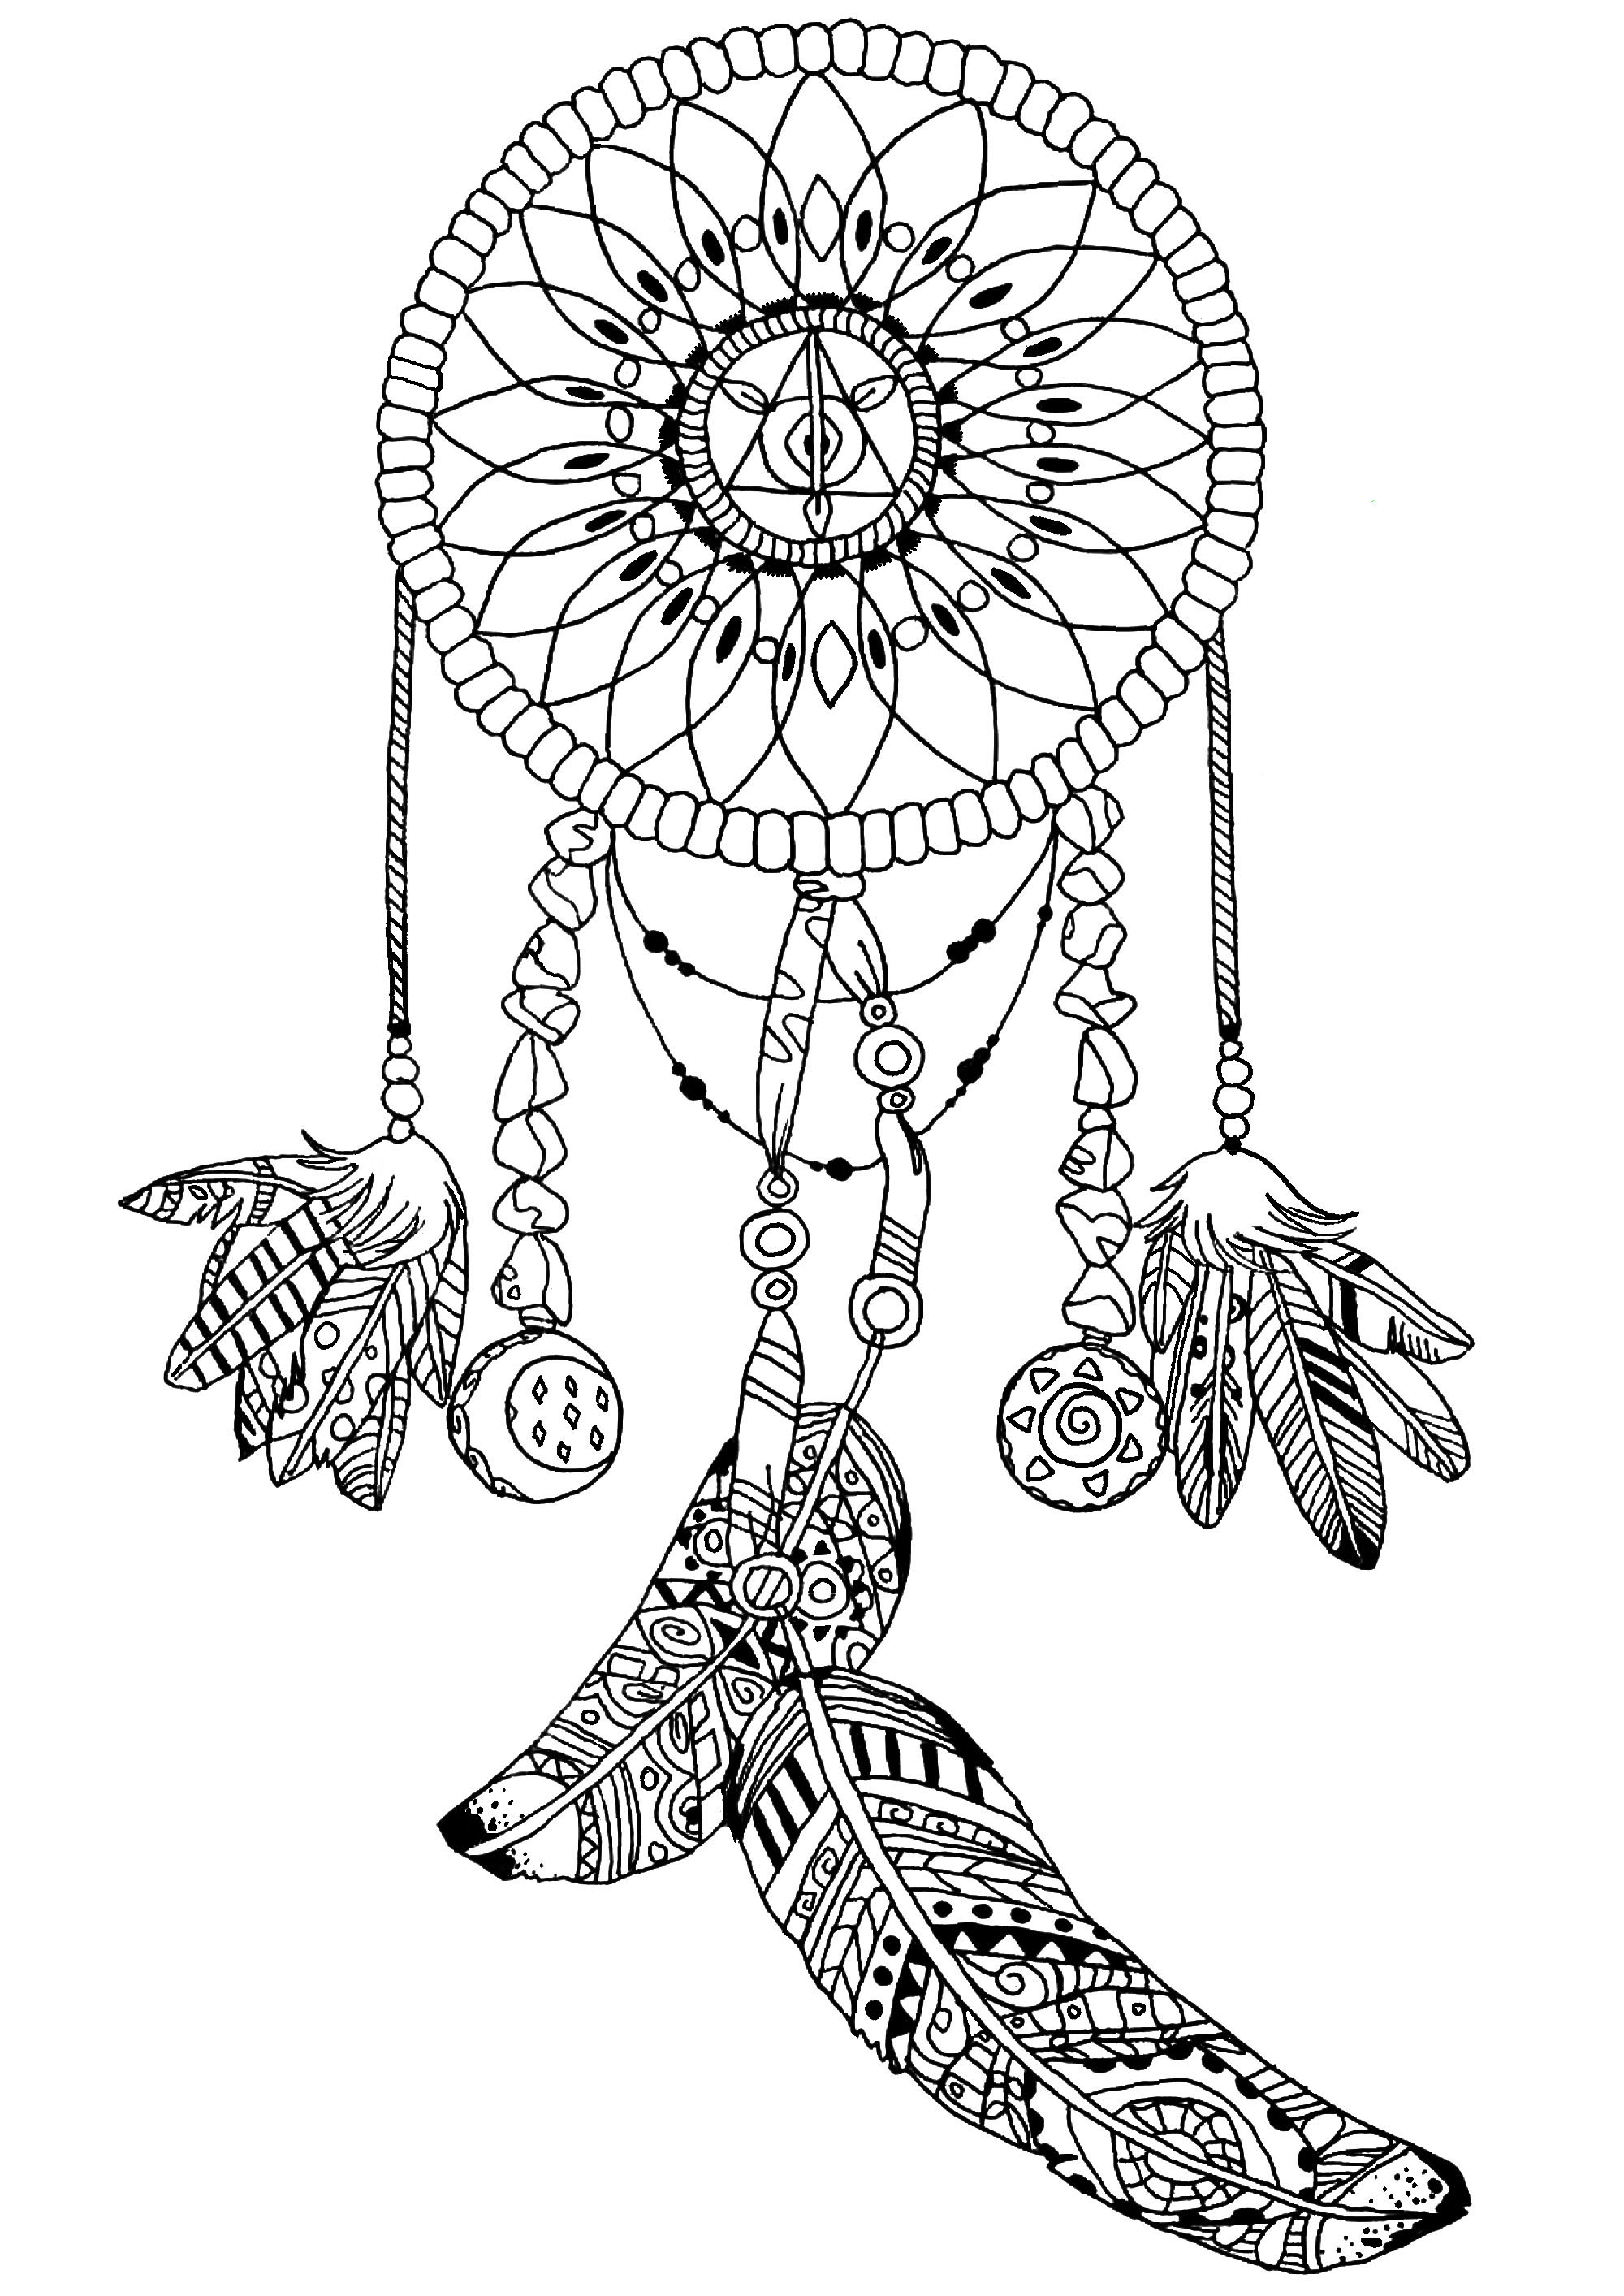 Coloring pictures for adults - Coloring Page Dream Catcher By Pauline Free To Print